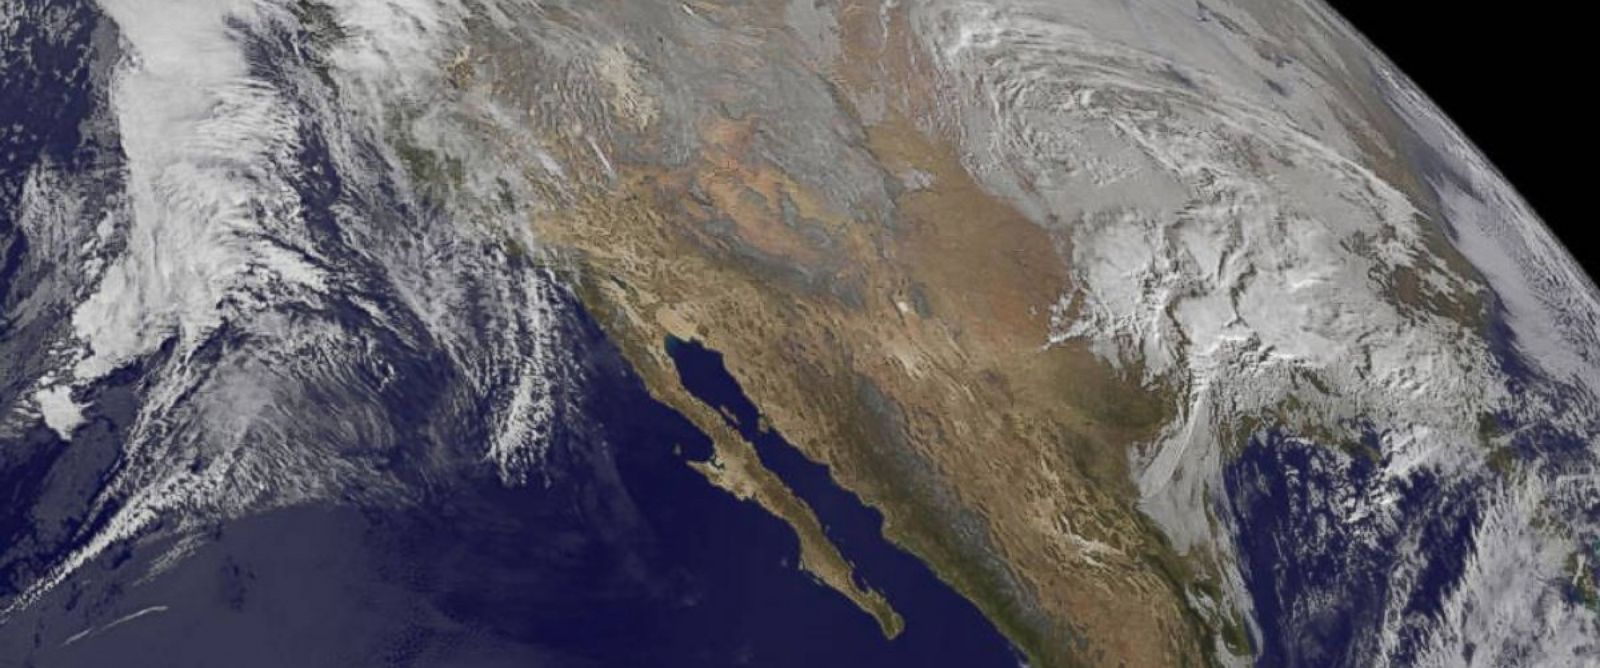 NASA Shares View of Massive Winter Storm From Space - ABC News